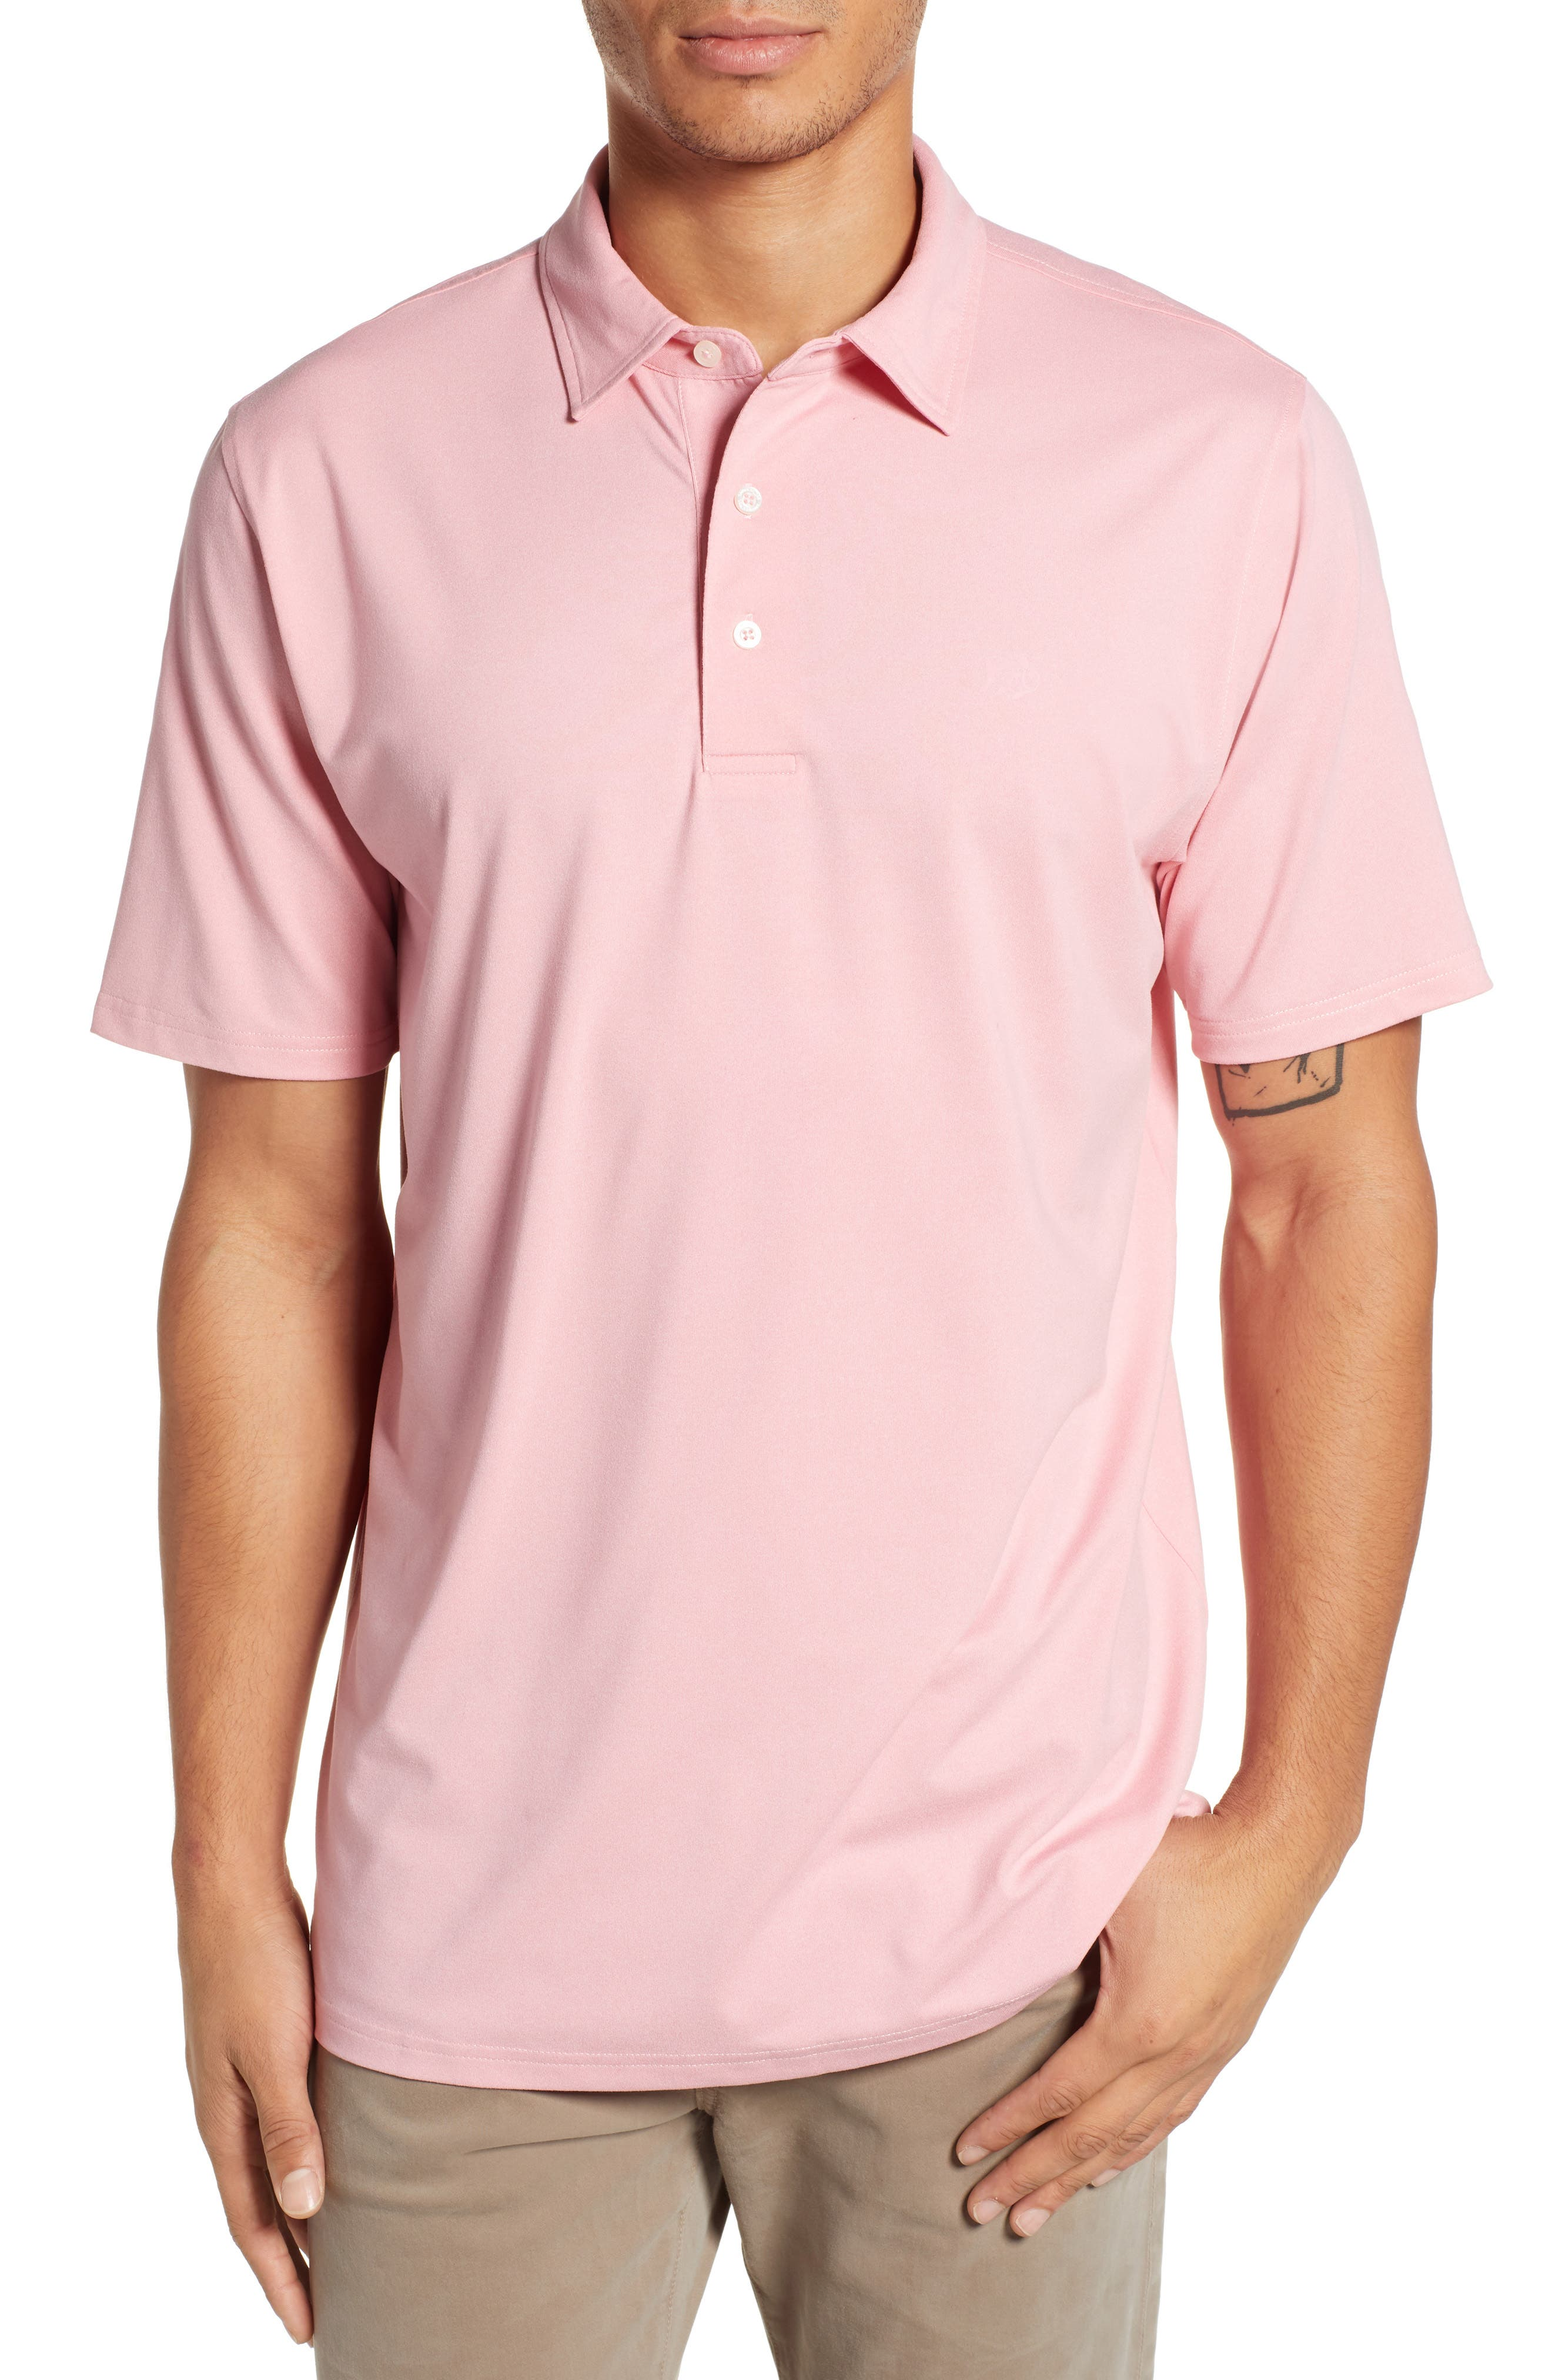 SOUTHERN TIDE Driver Performance Jersey Polo in Guava Pink